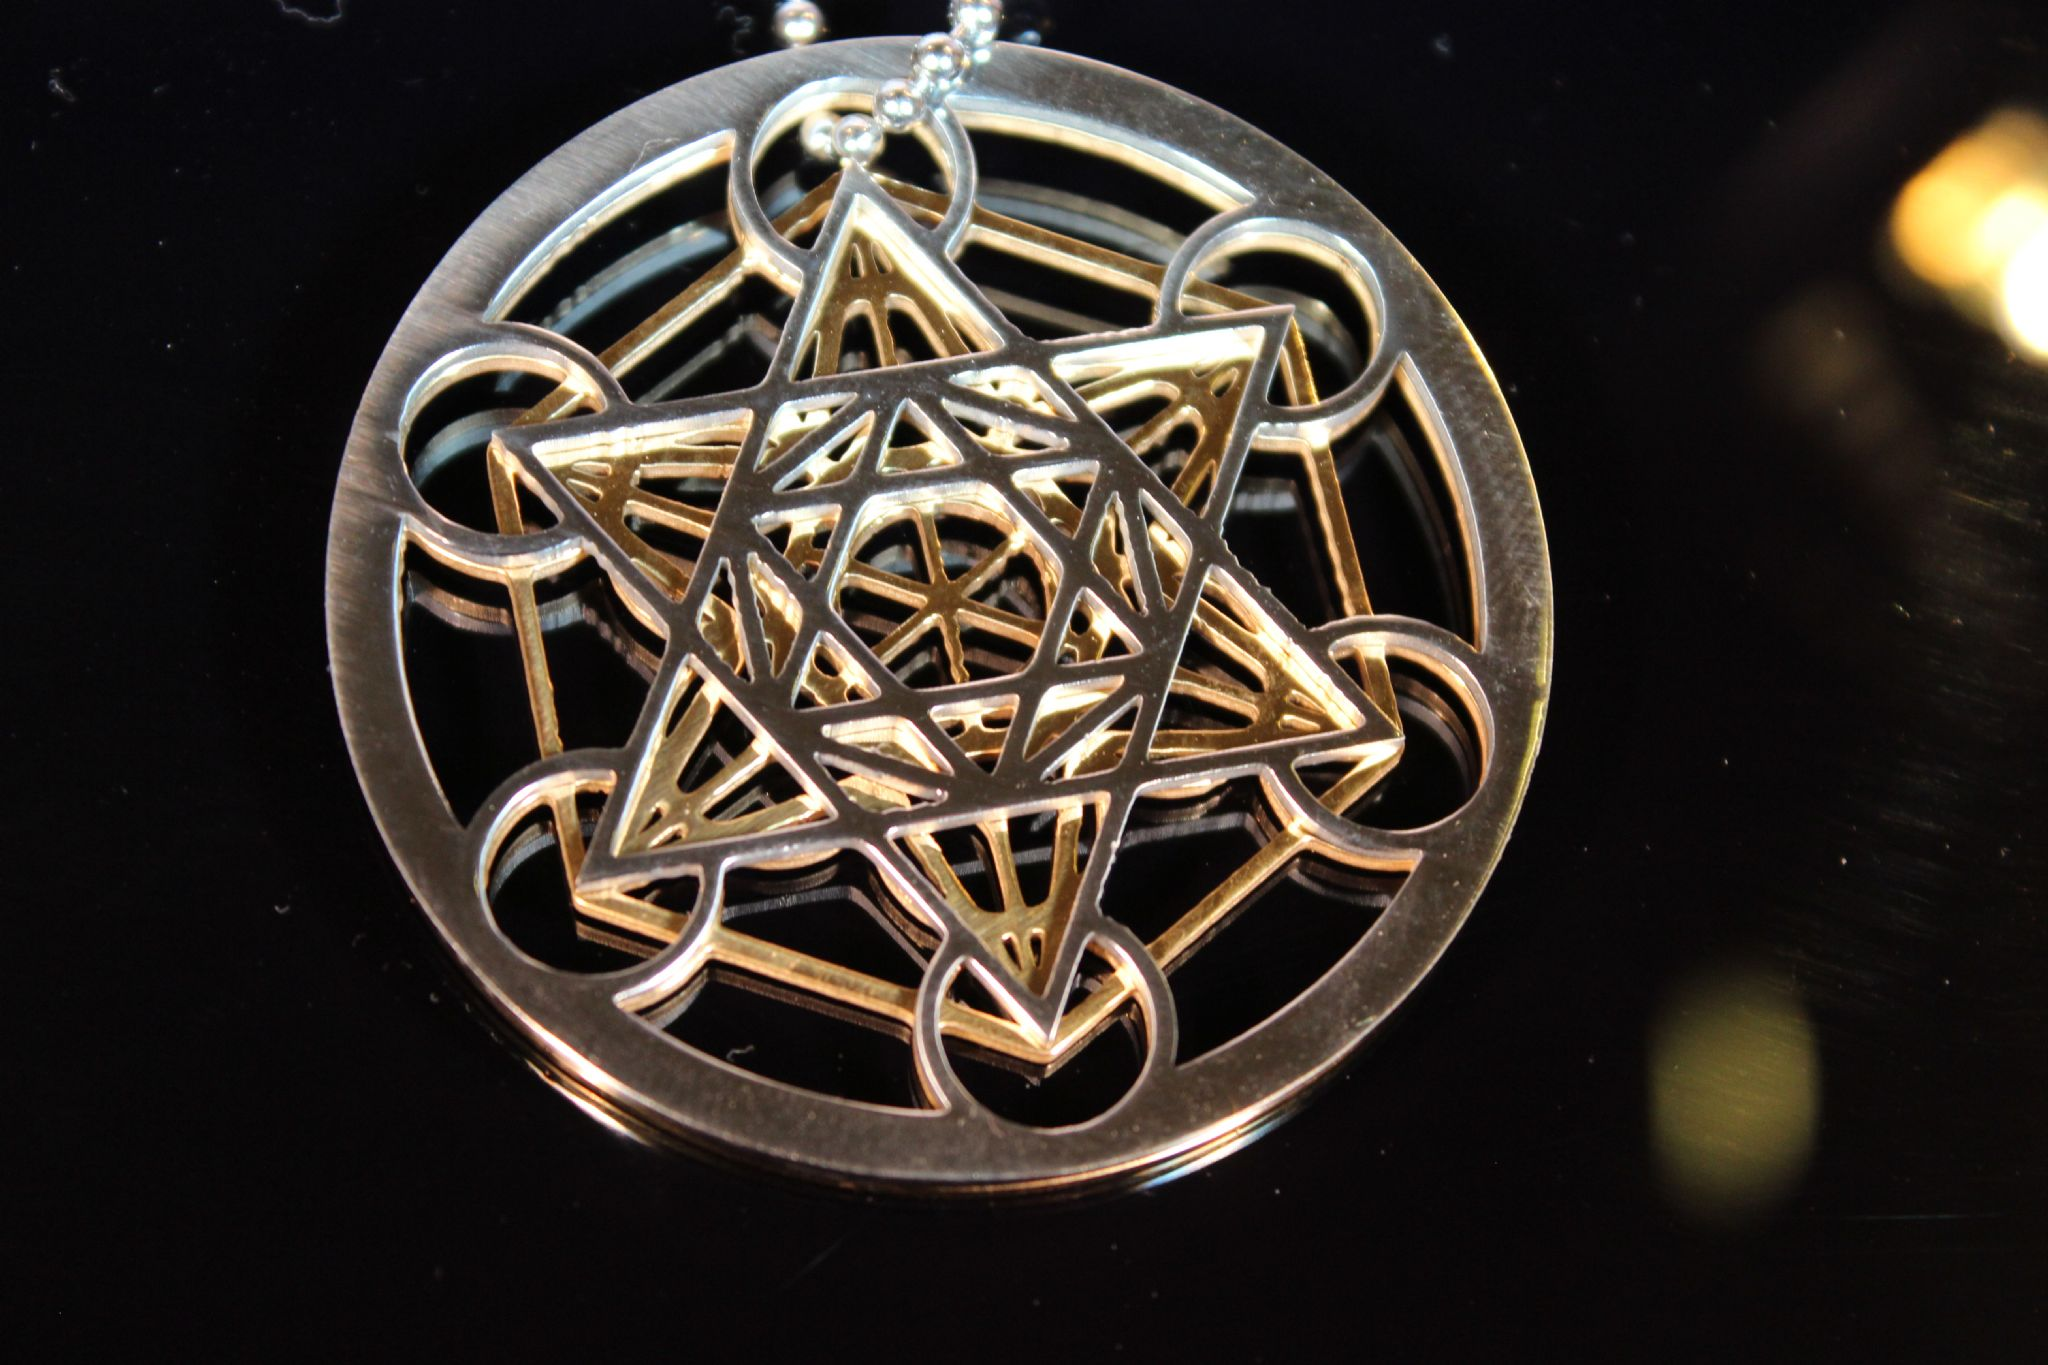 5g Protection Metatron Cube 3d Stainless Steel Pendant